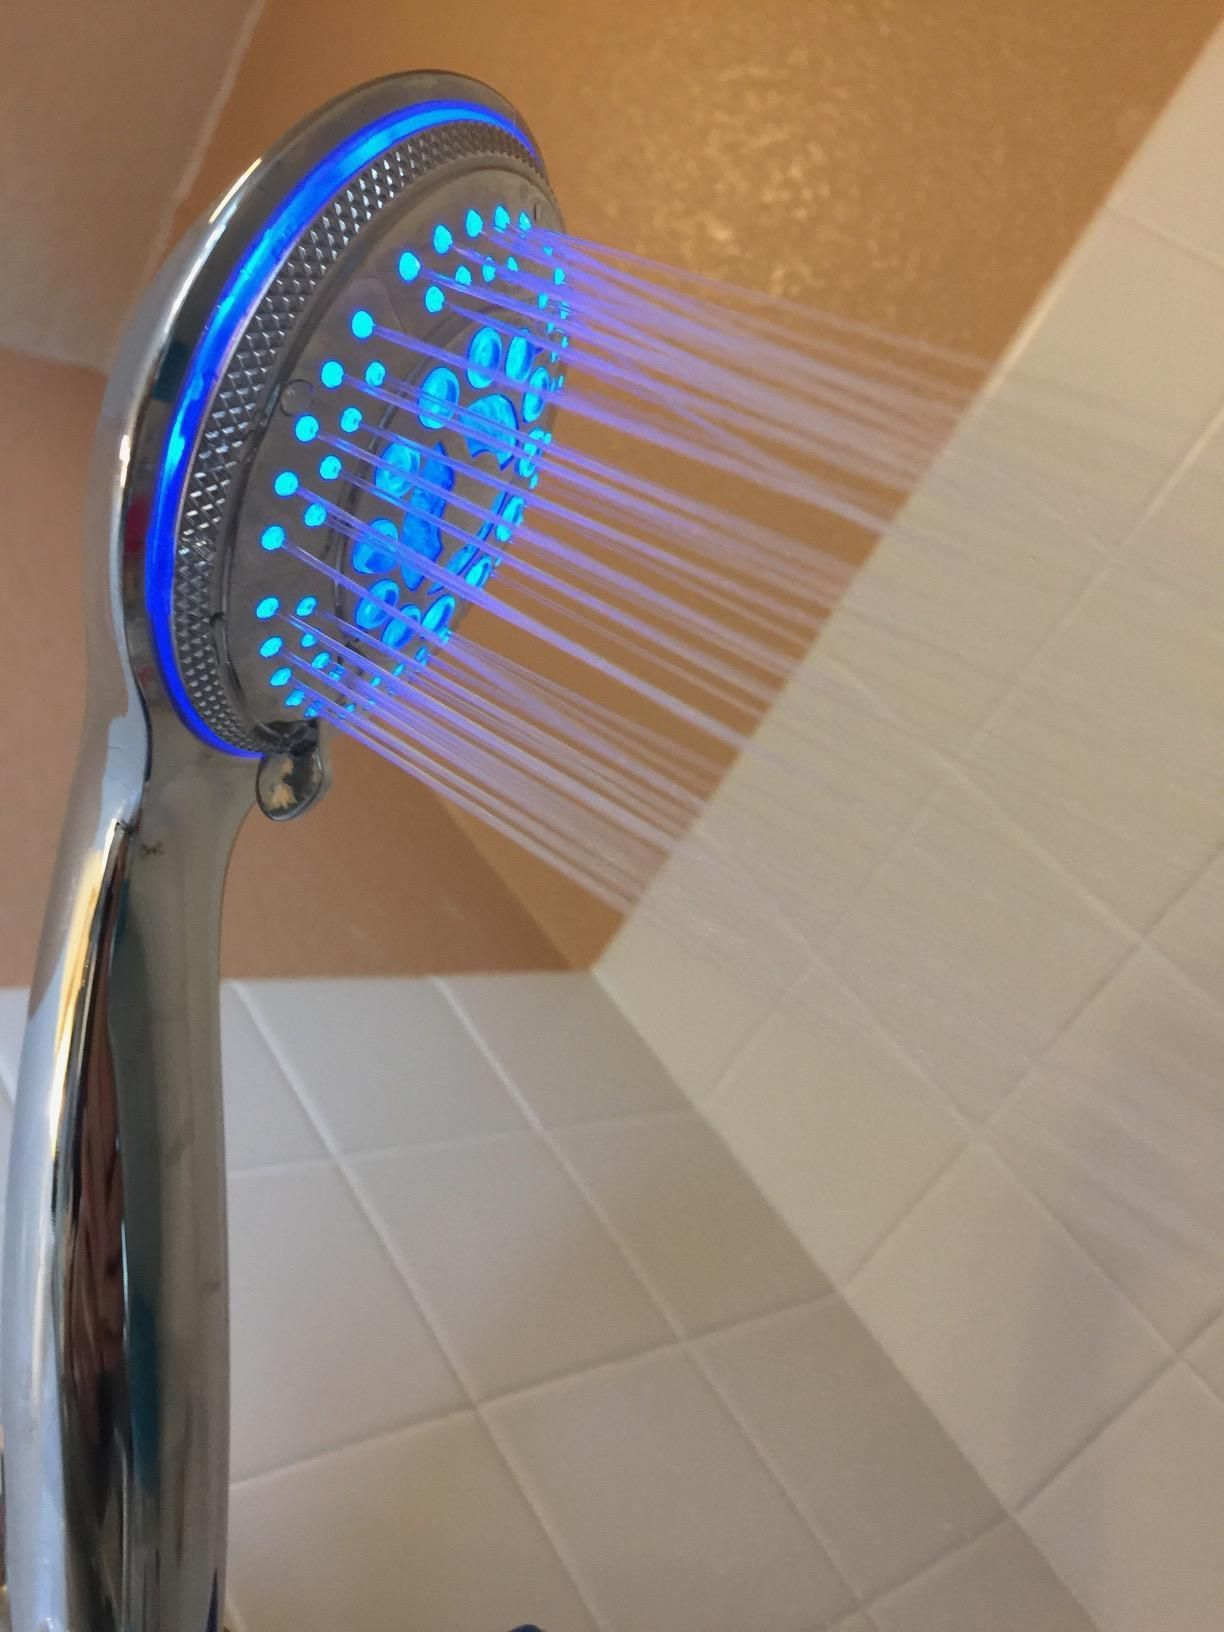 Best Handheld Shower Head Reviews In 2020 Led Shower Head